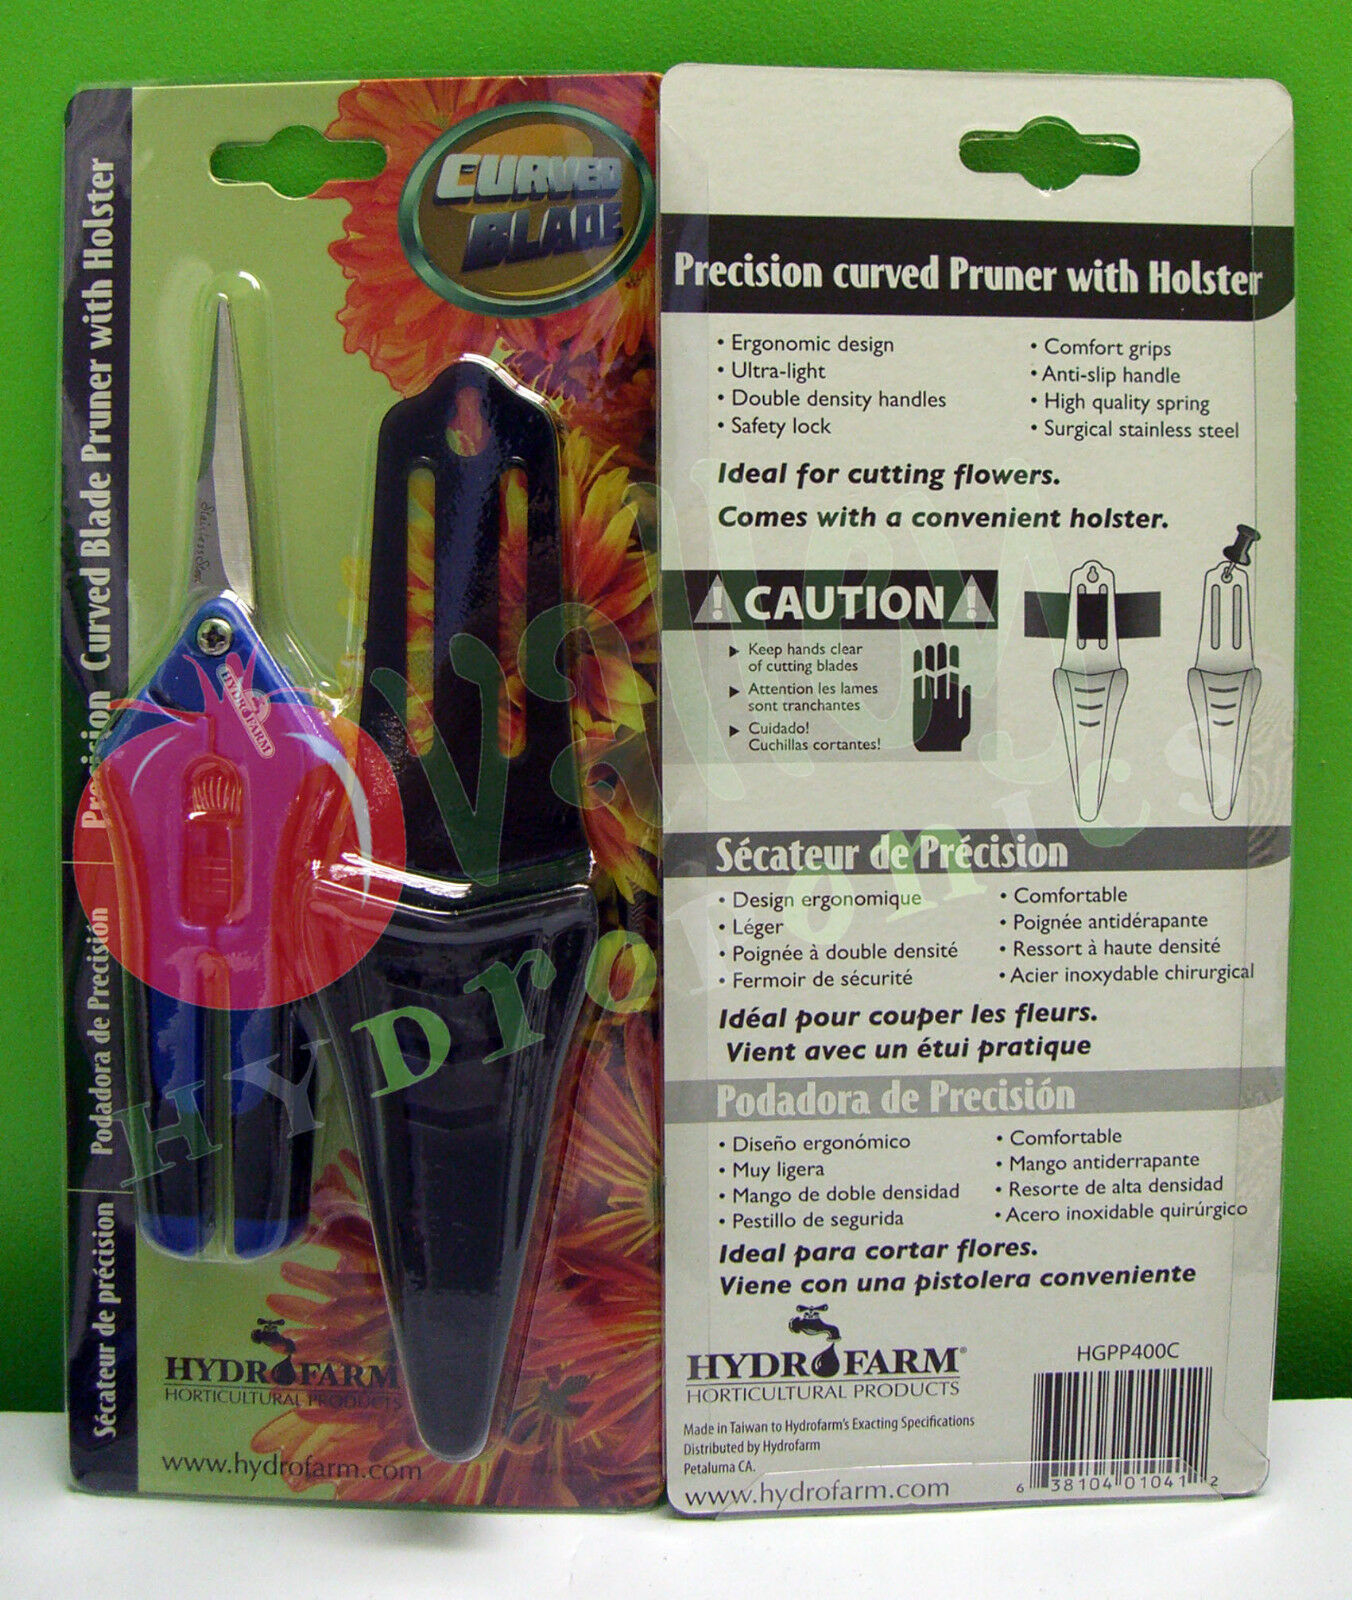 Hydrofarm Precision Curved Pruner